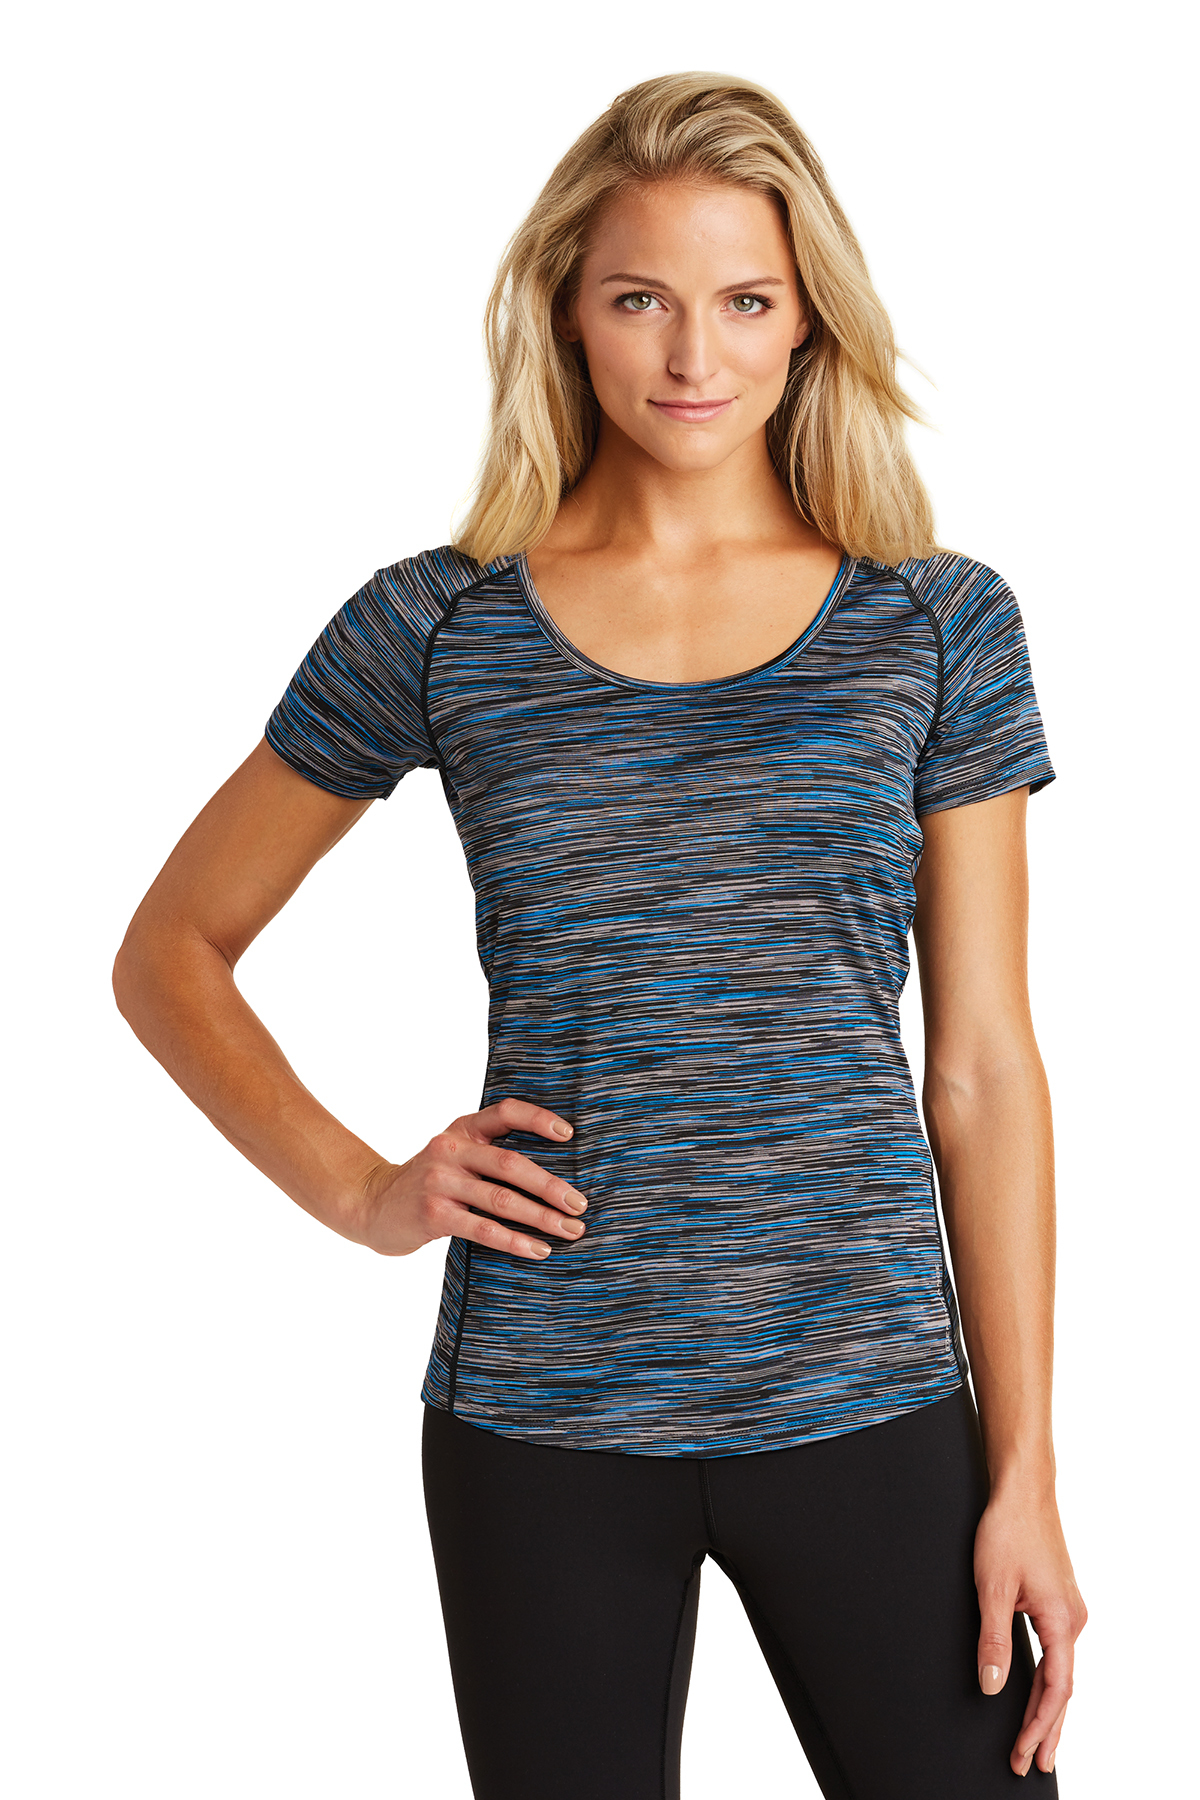 OGIO ENDURANCE LOE326 - Ladies Verge Scoop Neck Tee